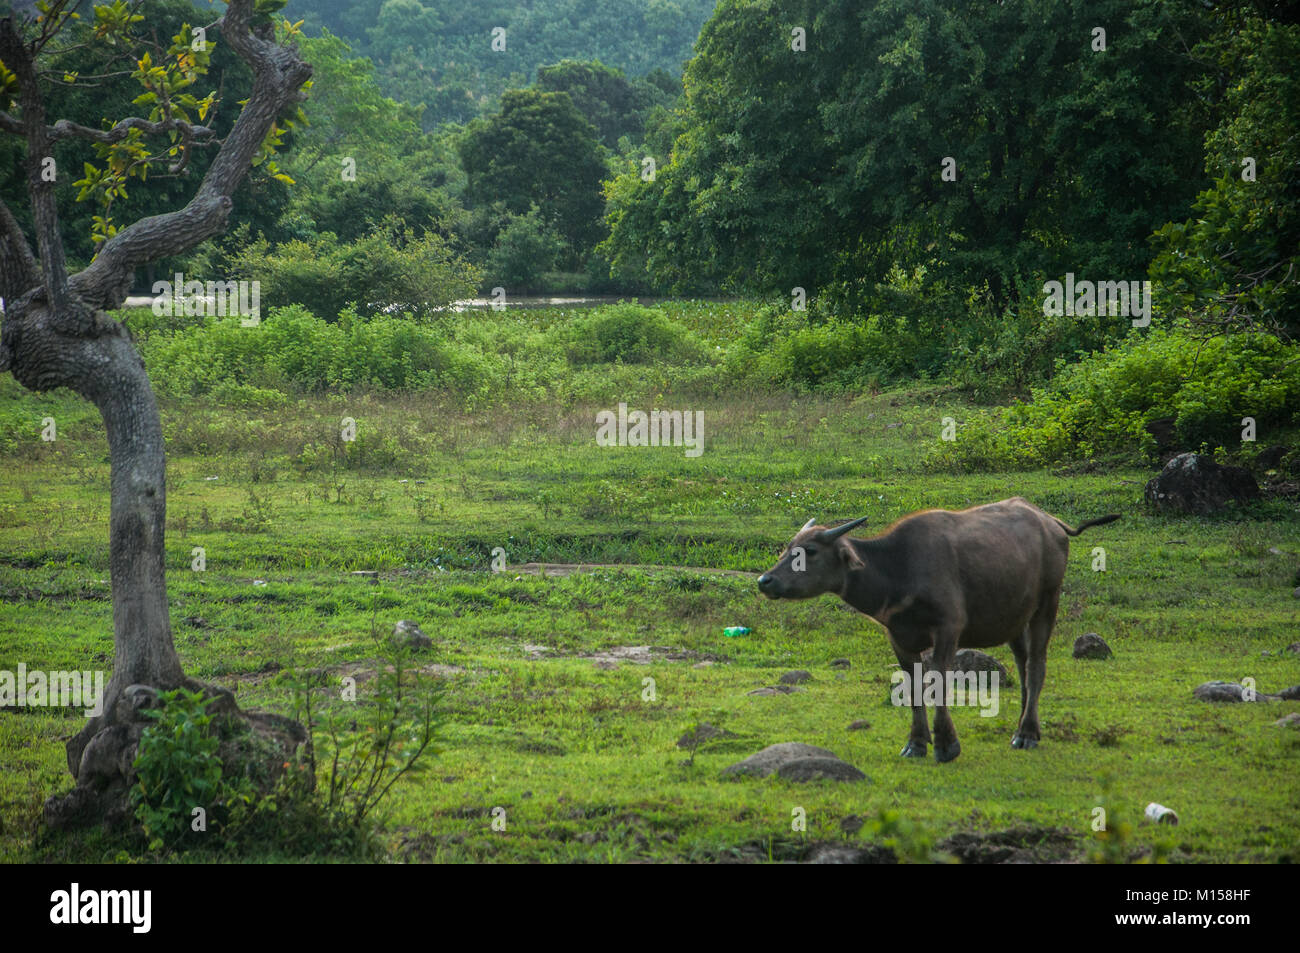 Water Buffaloes grazing in Sidenreng Rappang Regency, South Sulawesi, Indonesia. - Stock Image